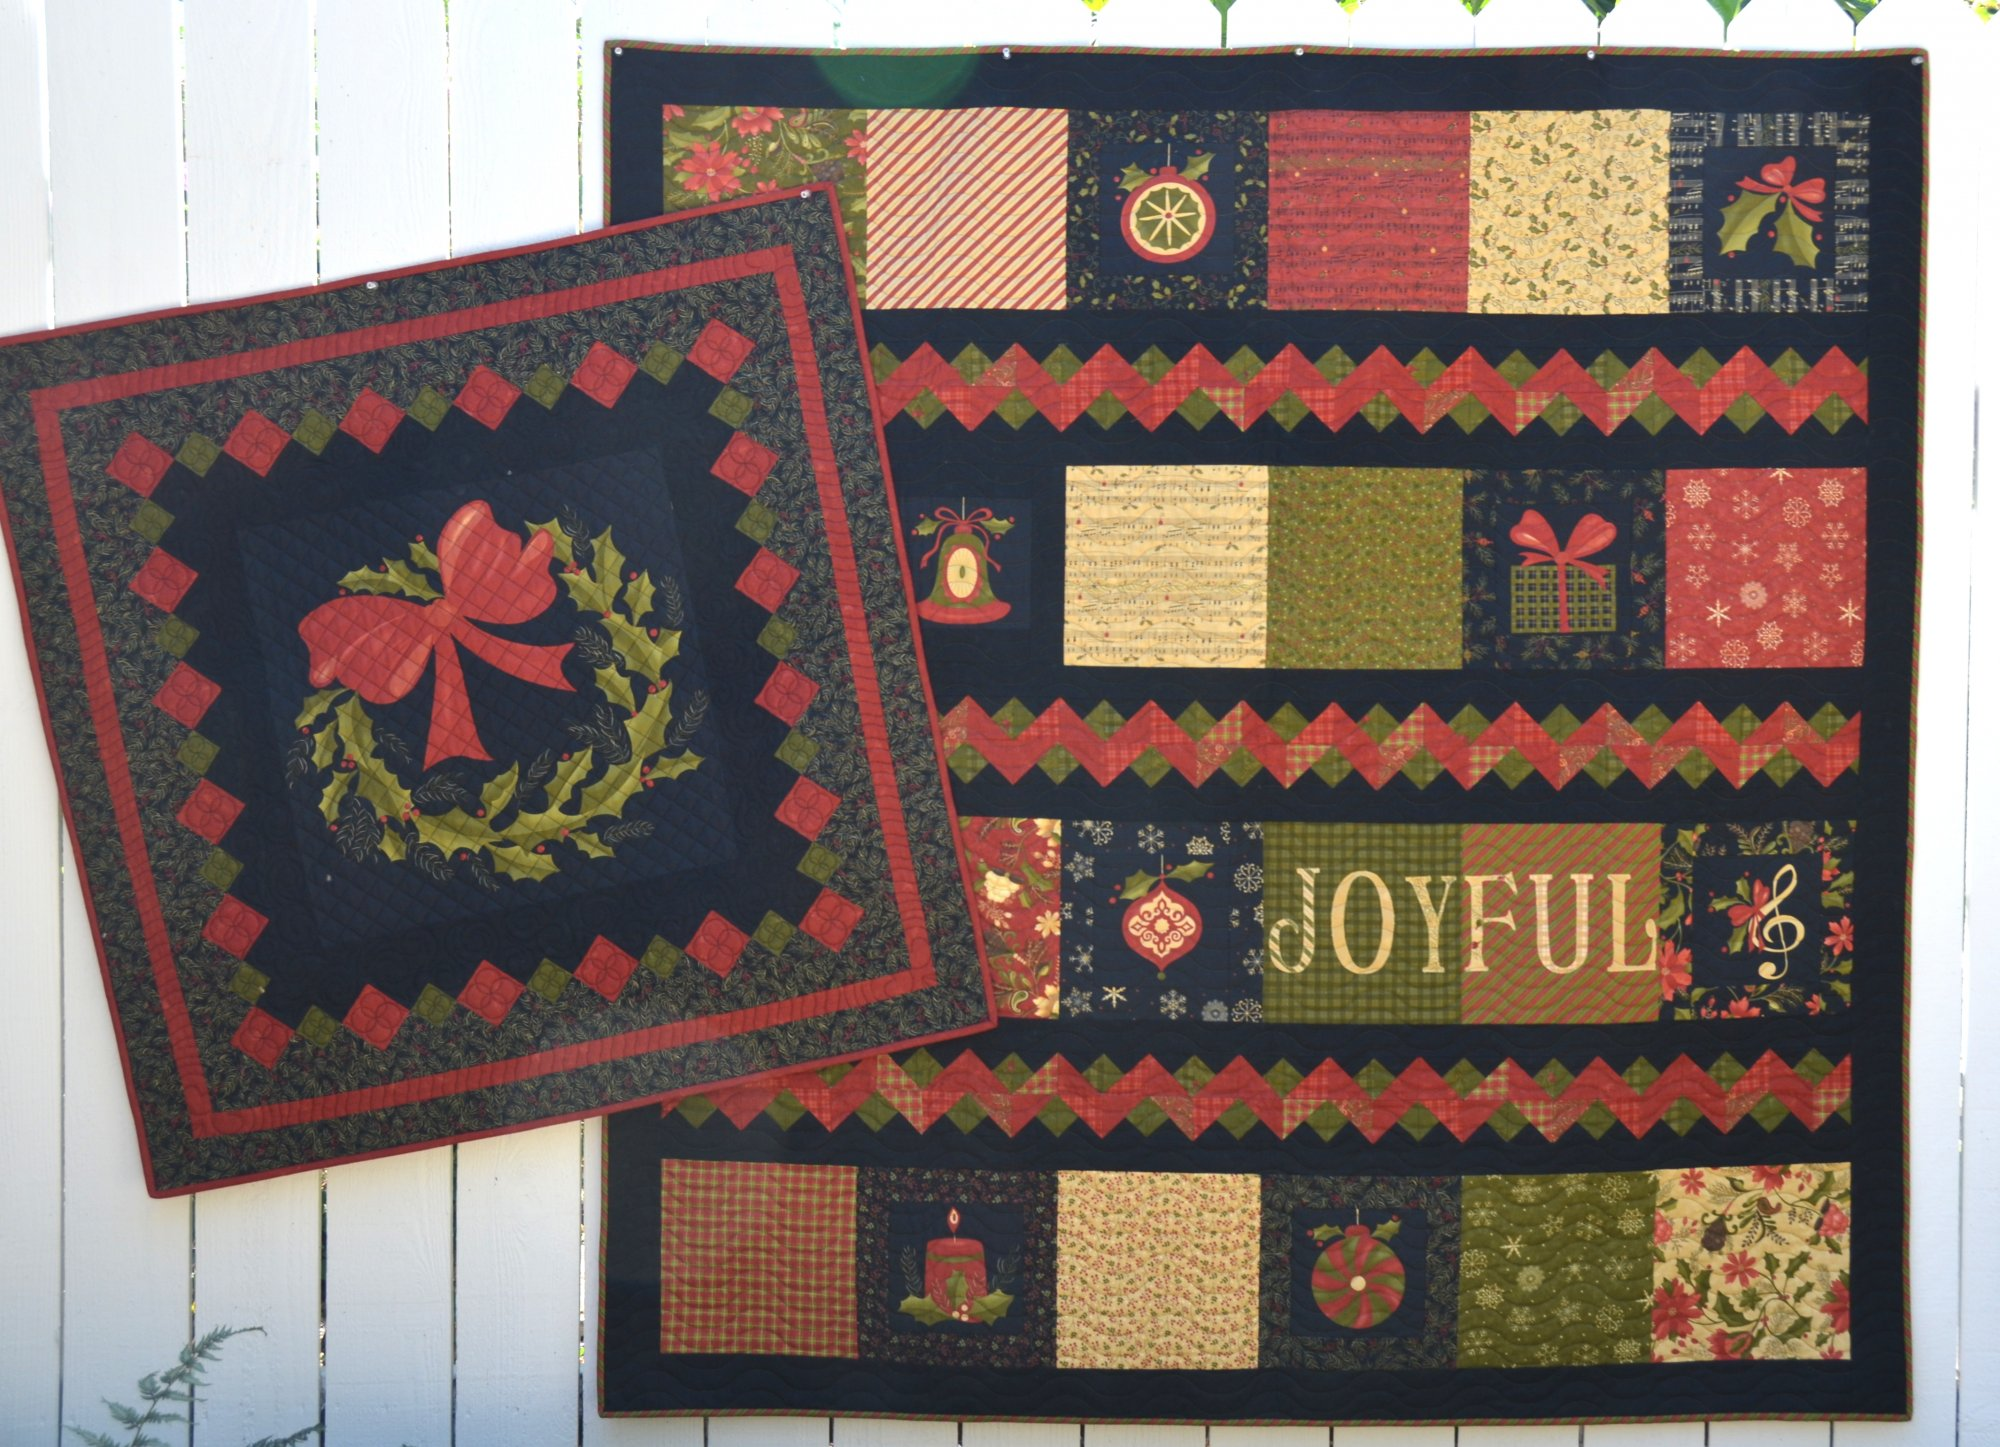 Delightful December Quilt Kit